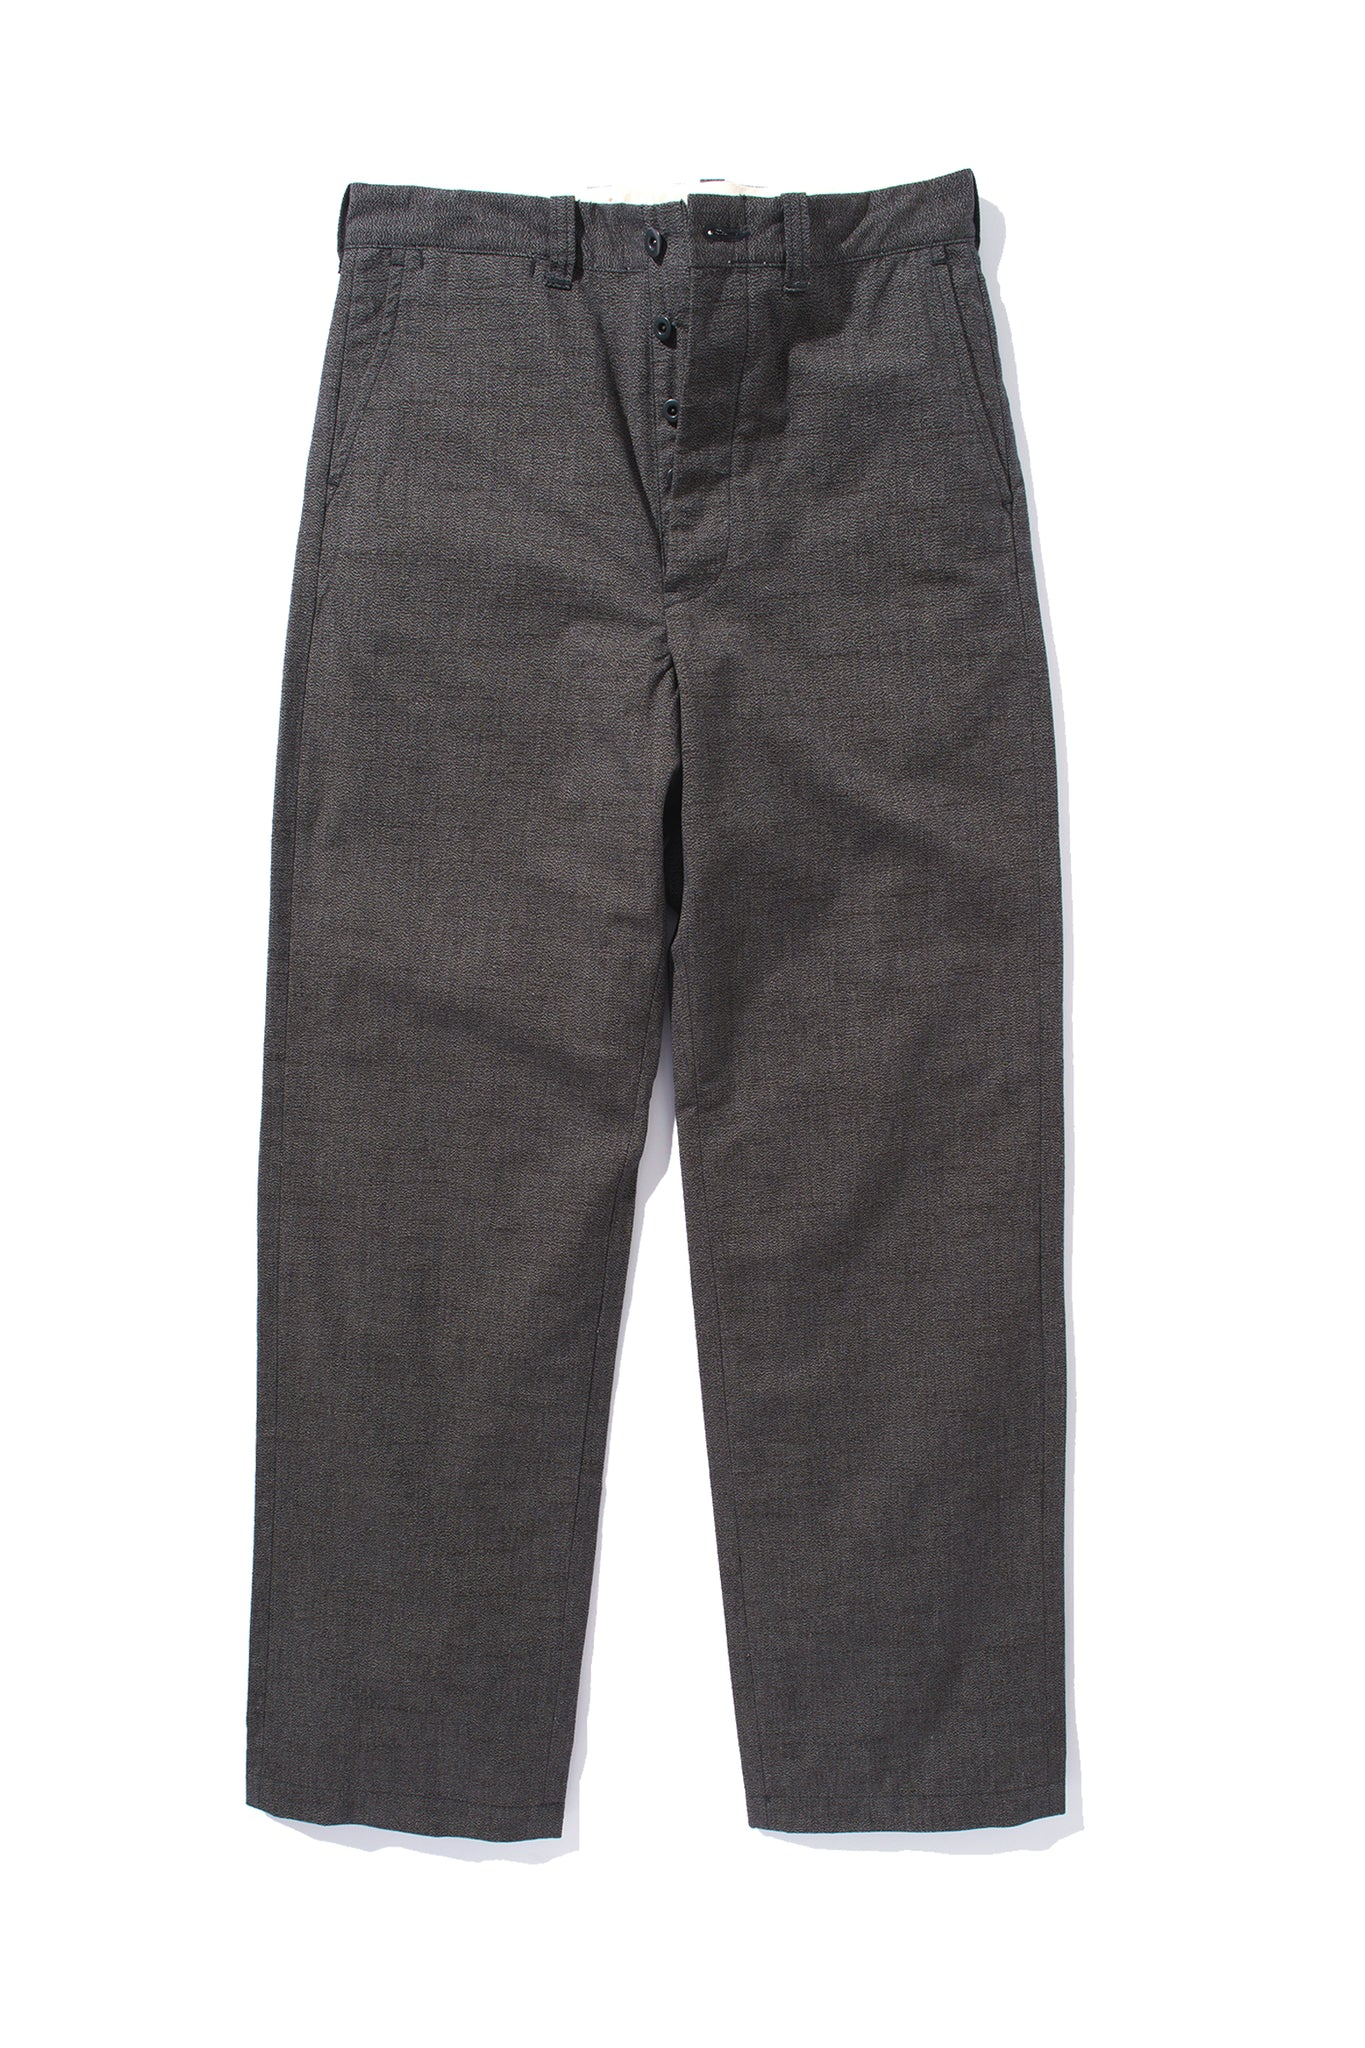 8HU CHAMBRAY TROUSERS